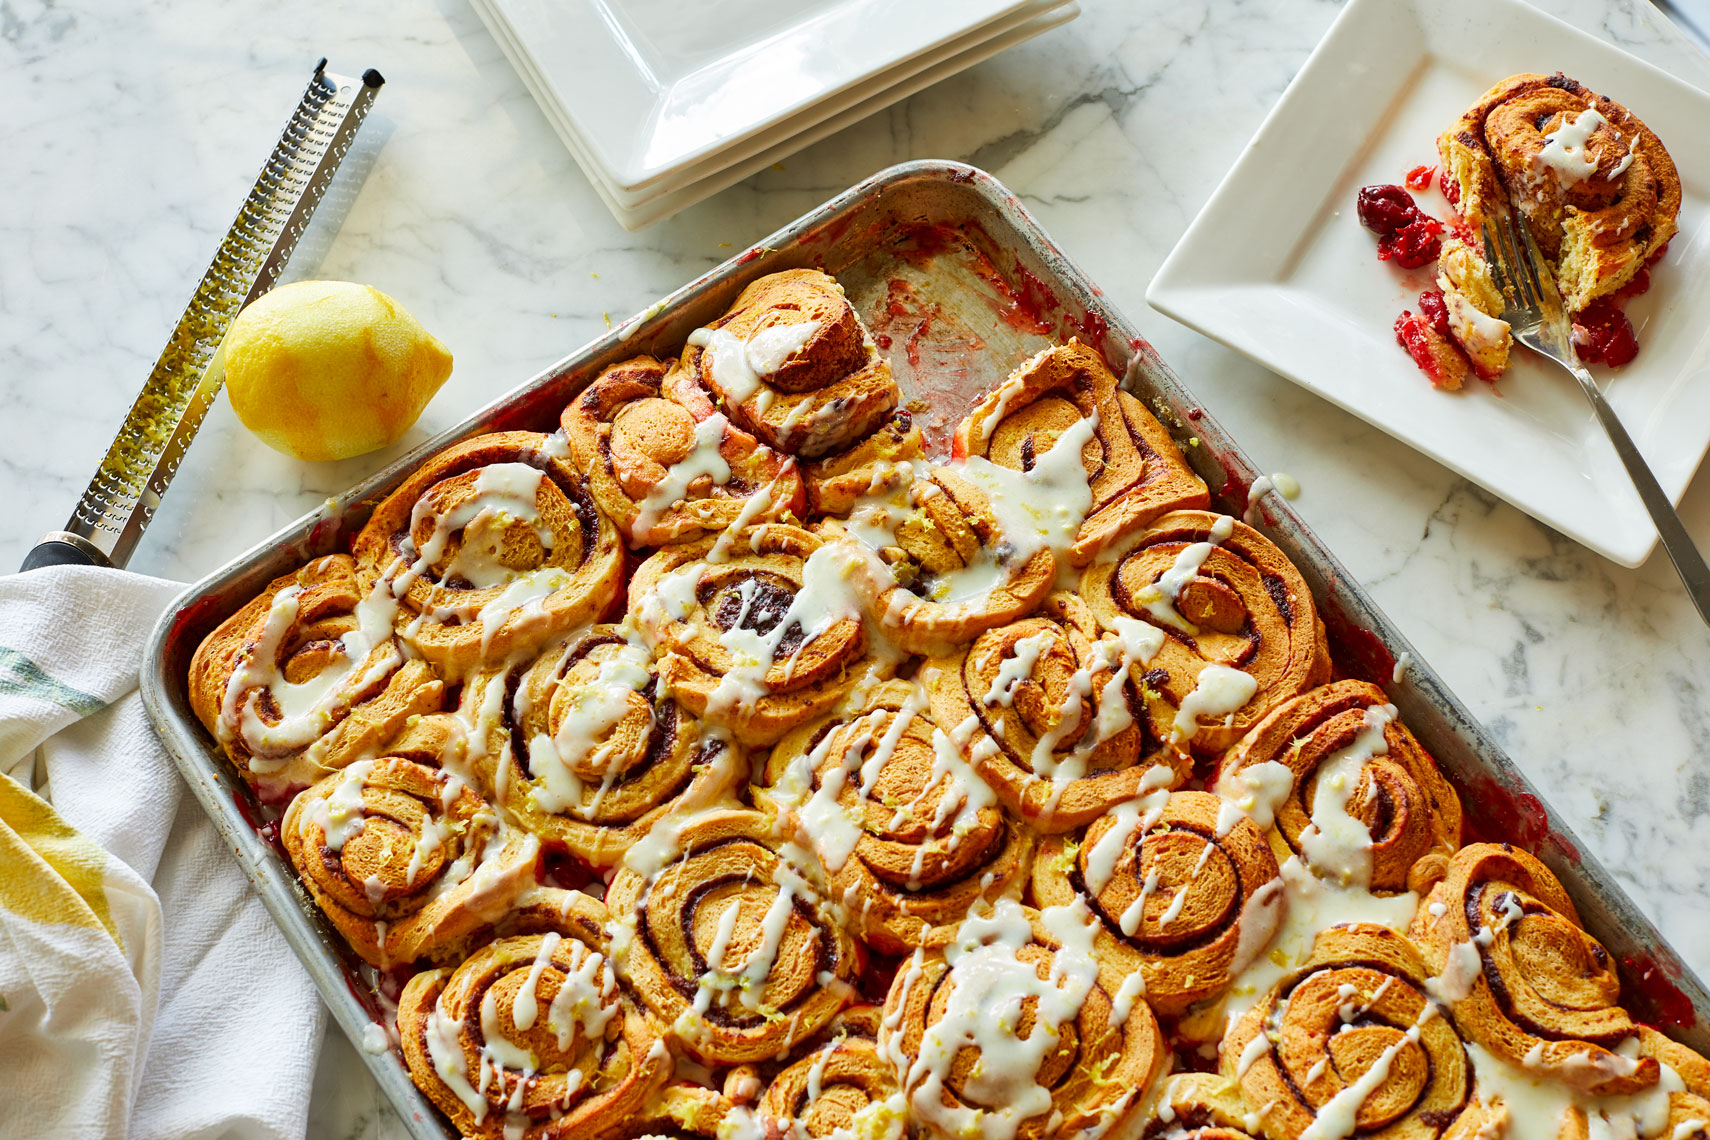 Sheet_Pan_Cherry_Lemon_Cinnamon_Bake__14_222